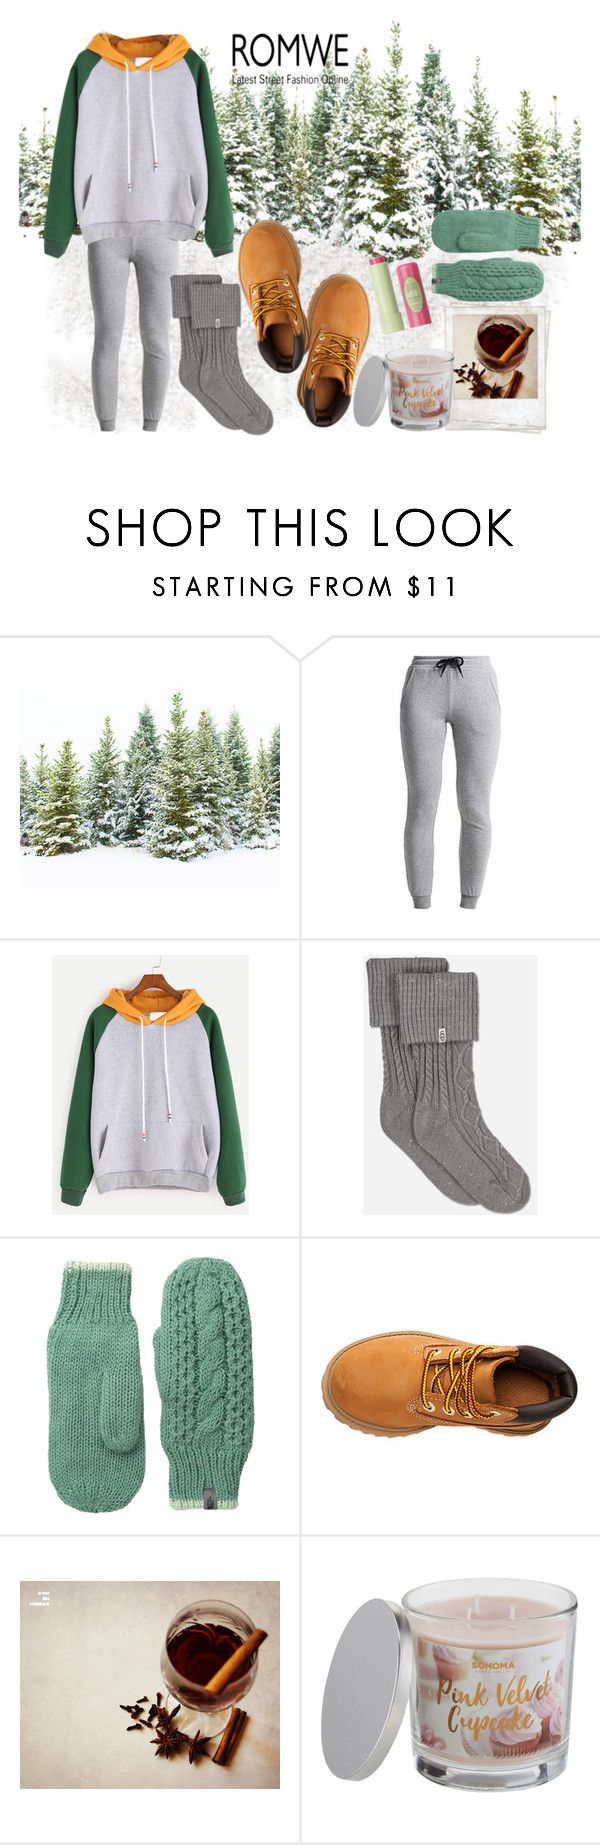 """Untitled #354"" by kat-van-d ❤ liked on Polyvore featuring UGG, The North Face, Timberland, Polaroid, SONOMA Goods for Life, Pixi and romwe"